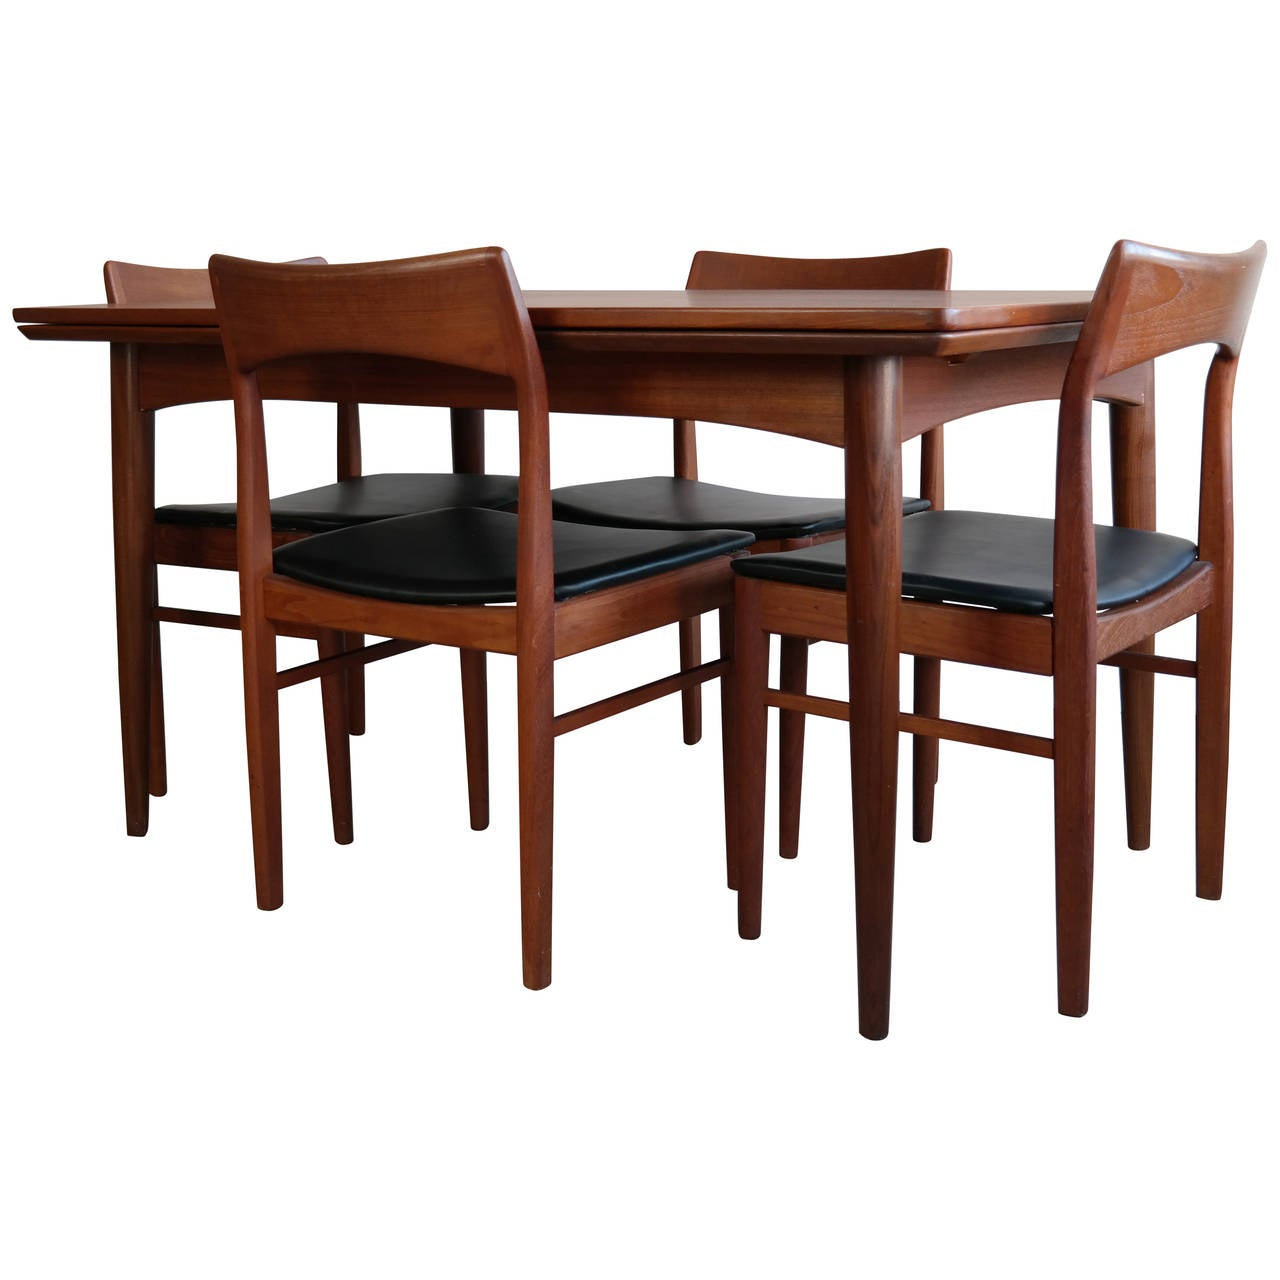 Danish modern dining set in teak at 1stdibs for Contemporary dining set